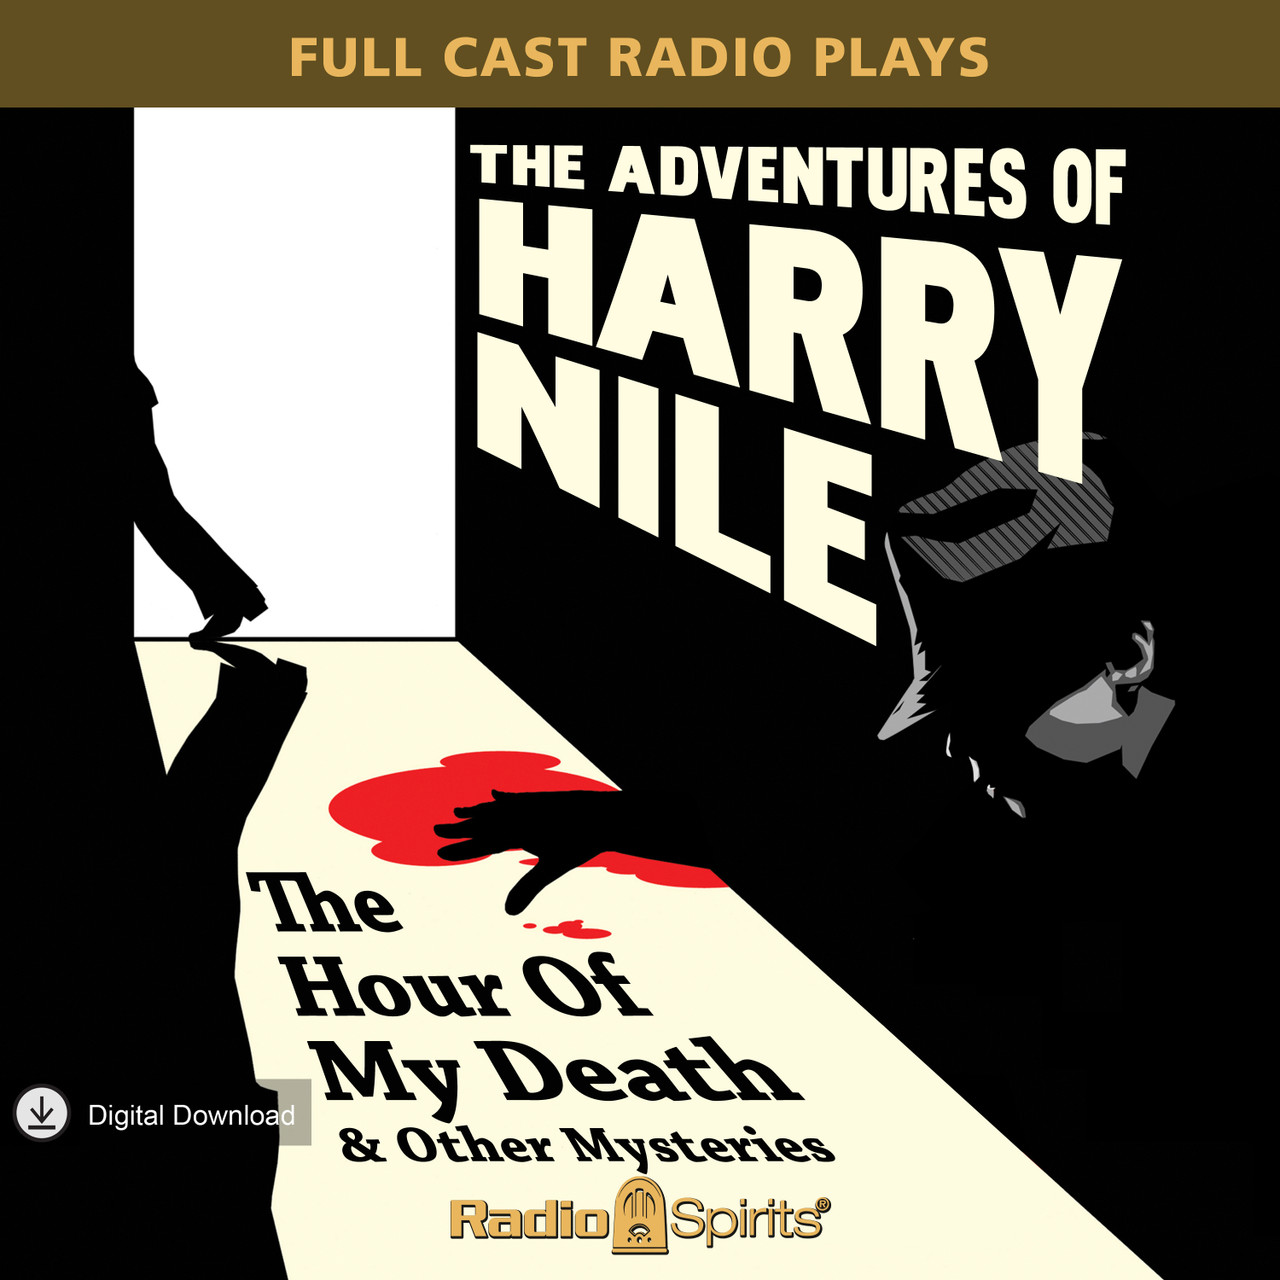 Harry Nile: The Hour of My Death & Other Mysteries (MP3 Download)